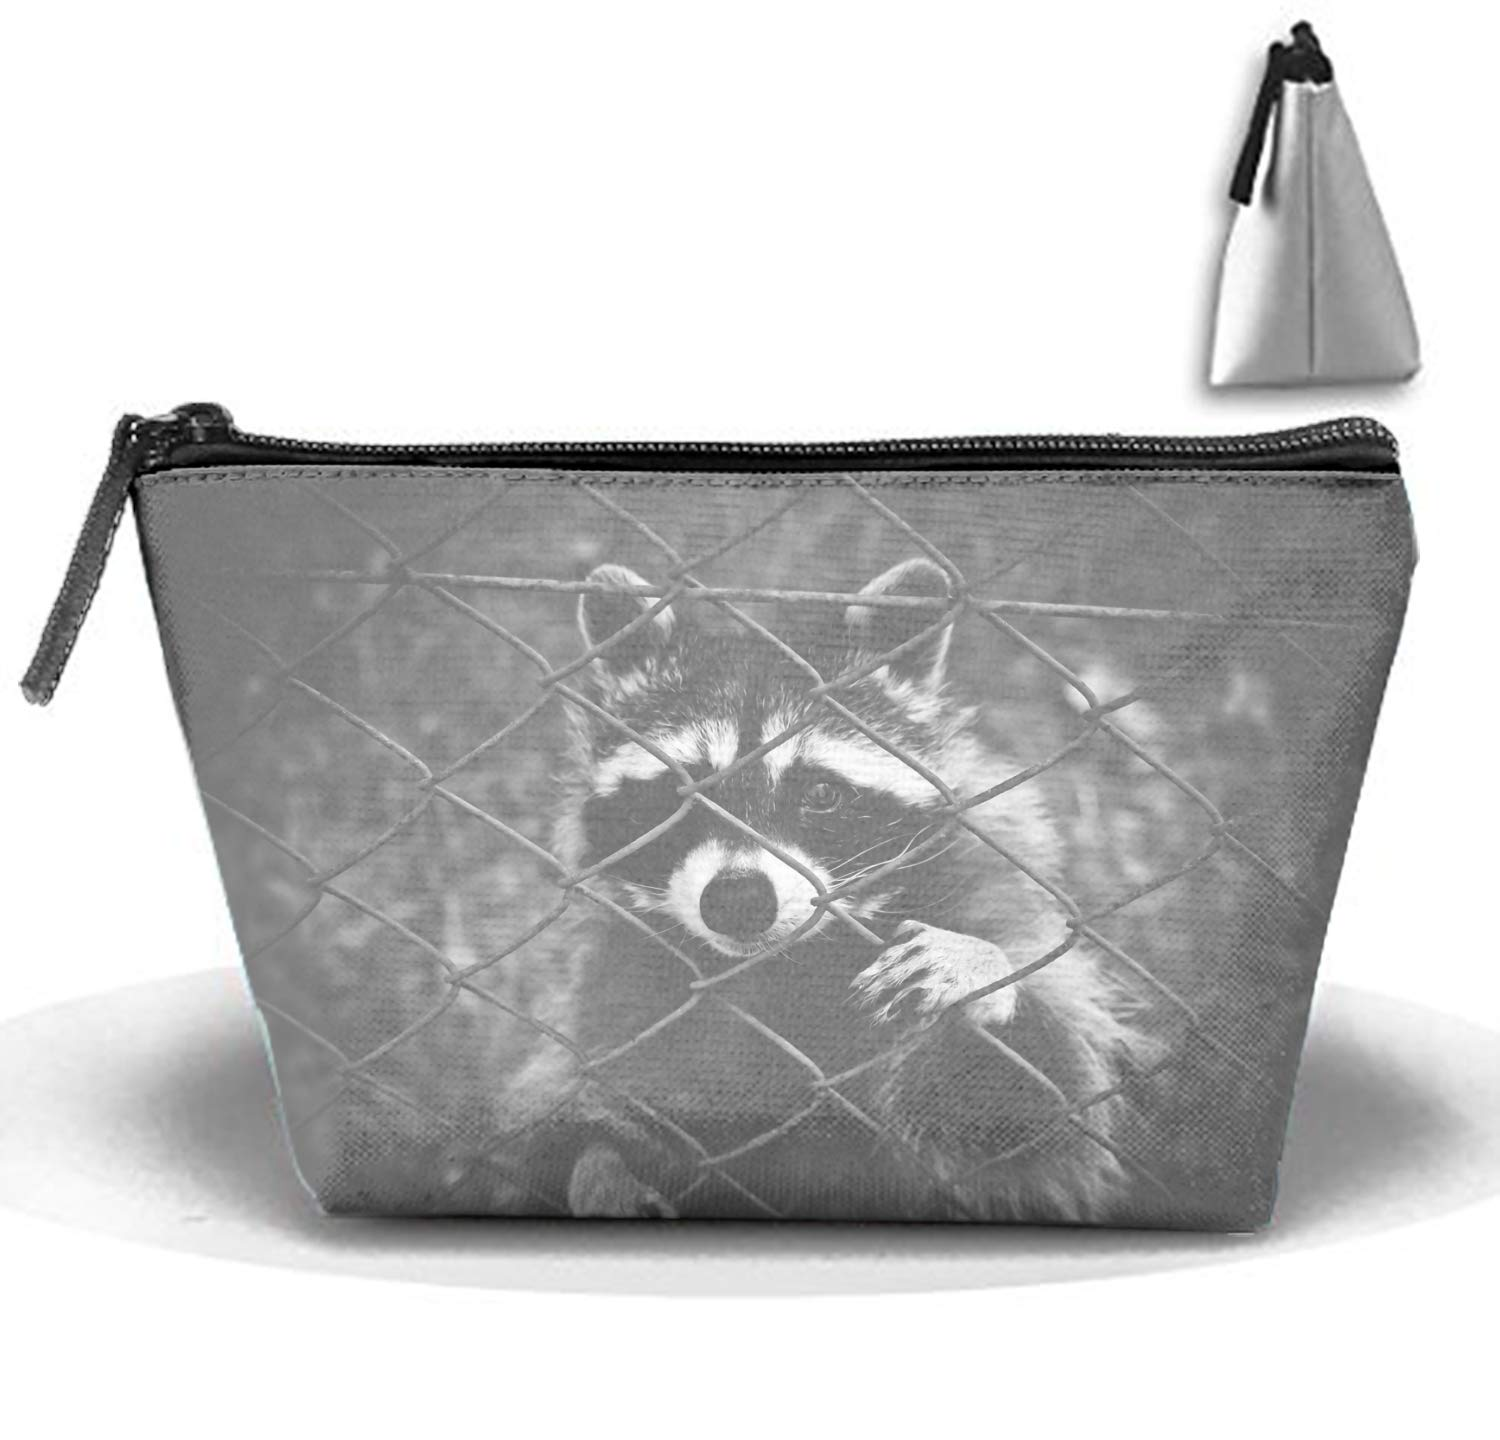 d64fd44ad193 Amazon.com : Animal Great Horned Owl Birds Cosmetic Bags Portable Travel  Trapezoidal Makeup Organizer : Beauty